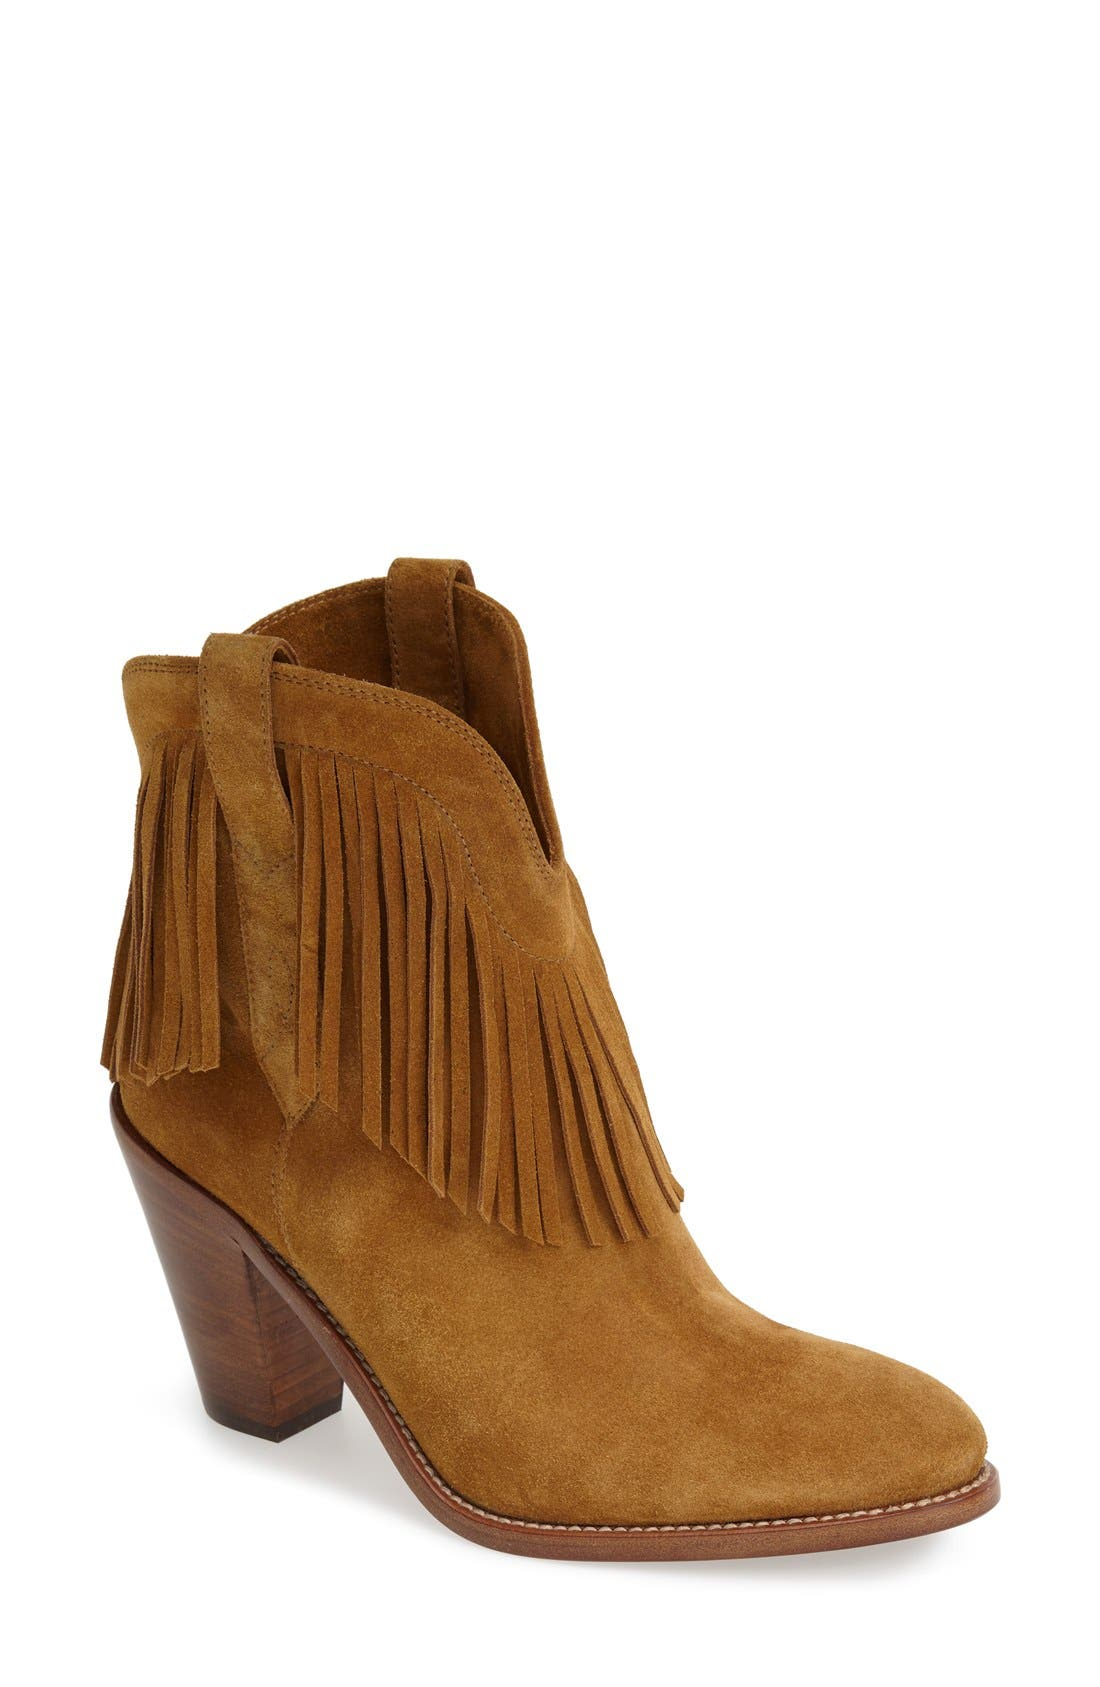 Main Image - Saint Laurent 'New Western' Fringe Boot (Women)